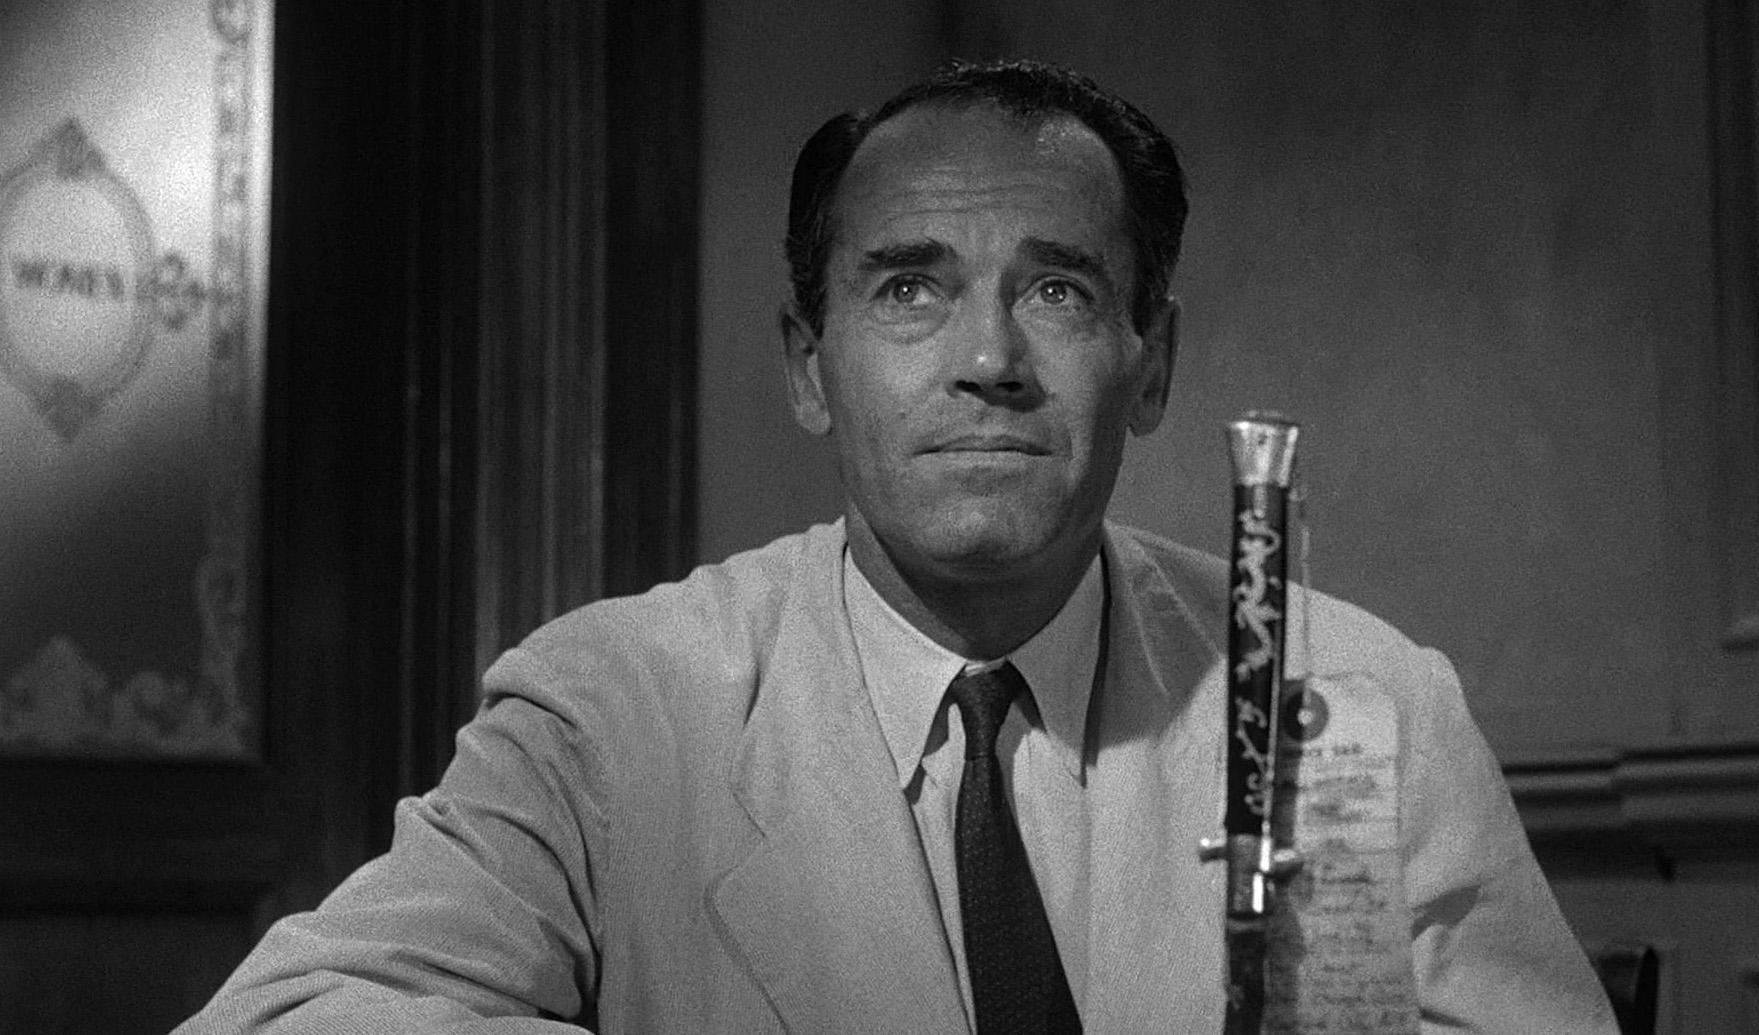 12 angry men by sidney lumet essay An analysis of the law system in 12 angry men american legal system in the movie twelve angry men by sidney lumet an essay on twelve angry men.